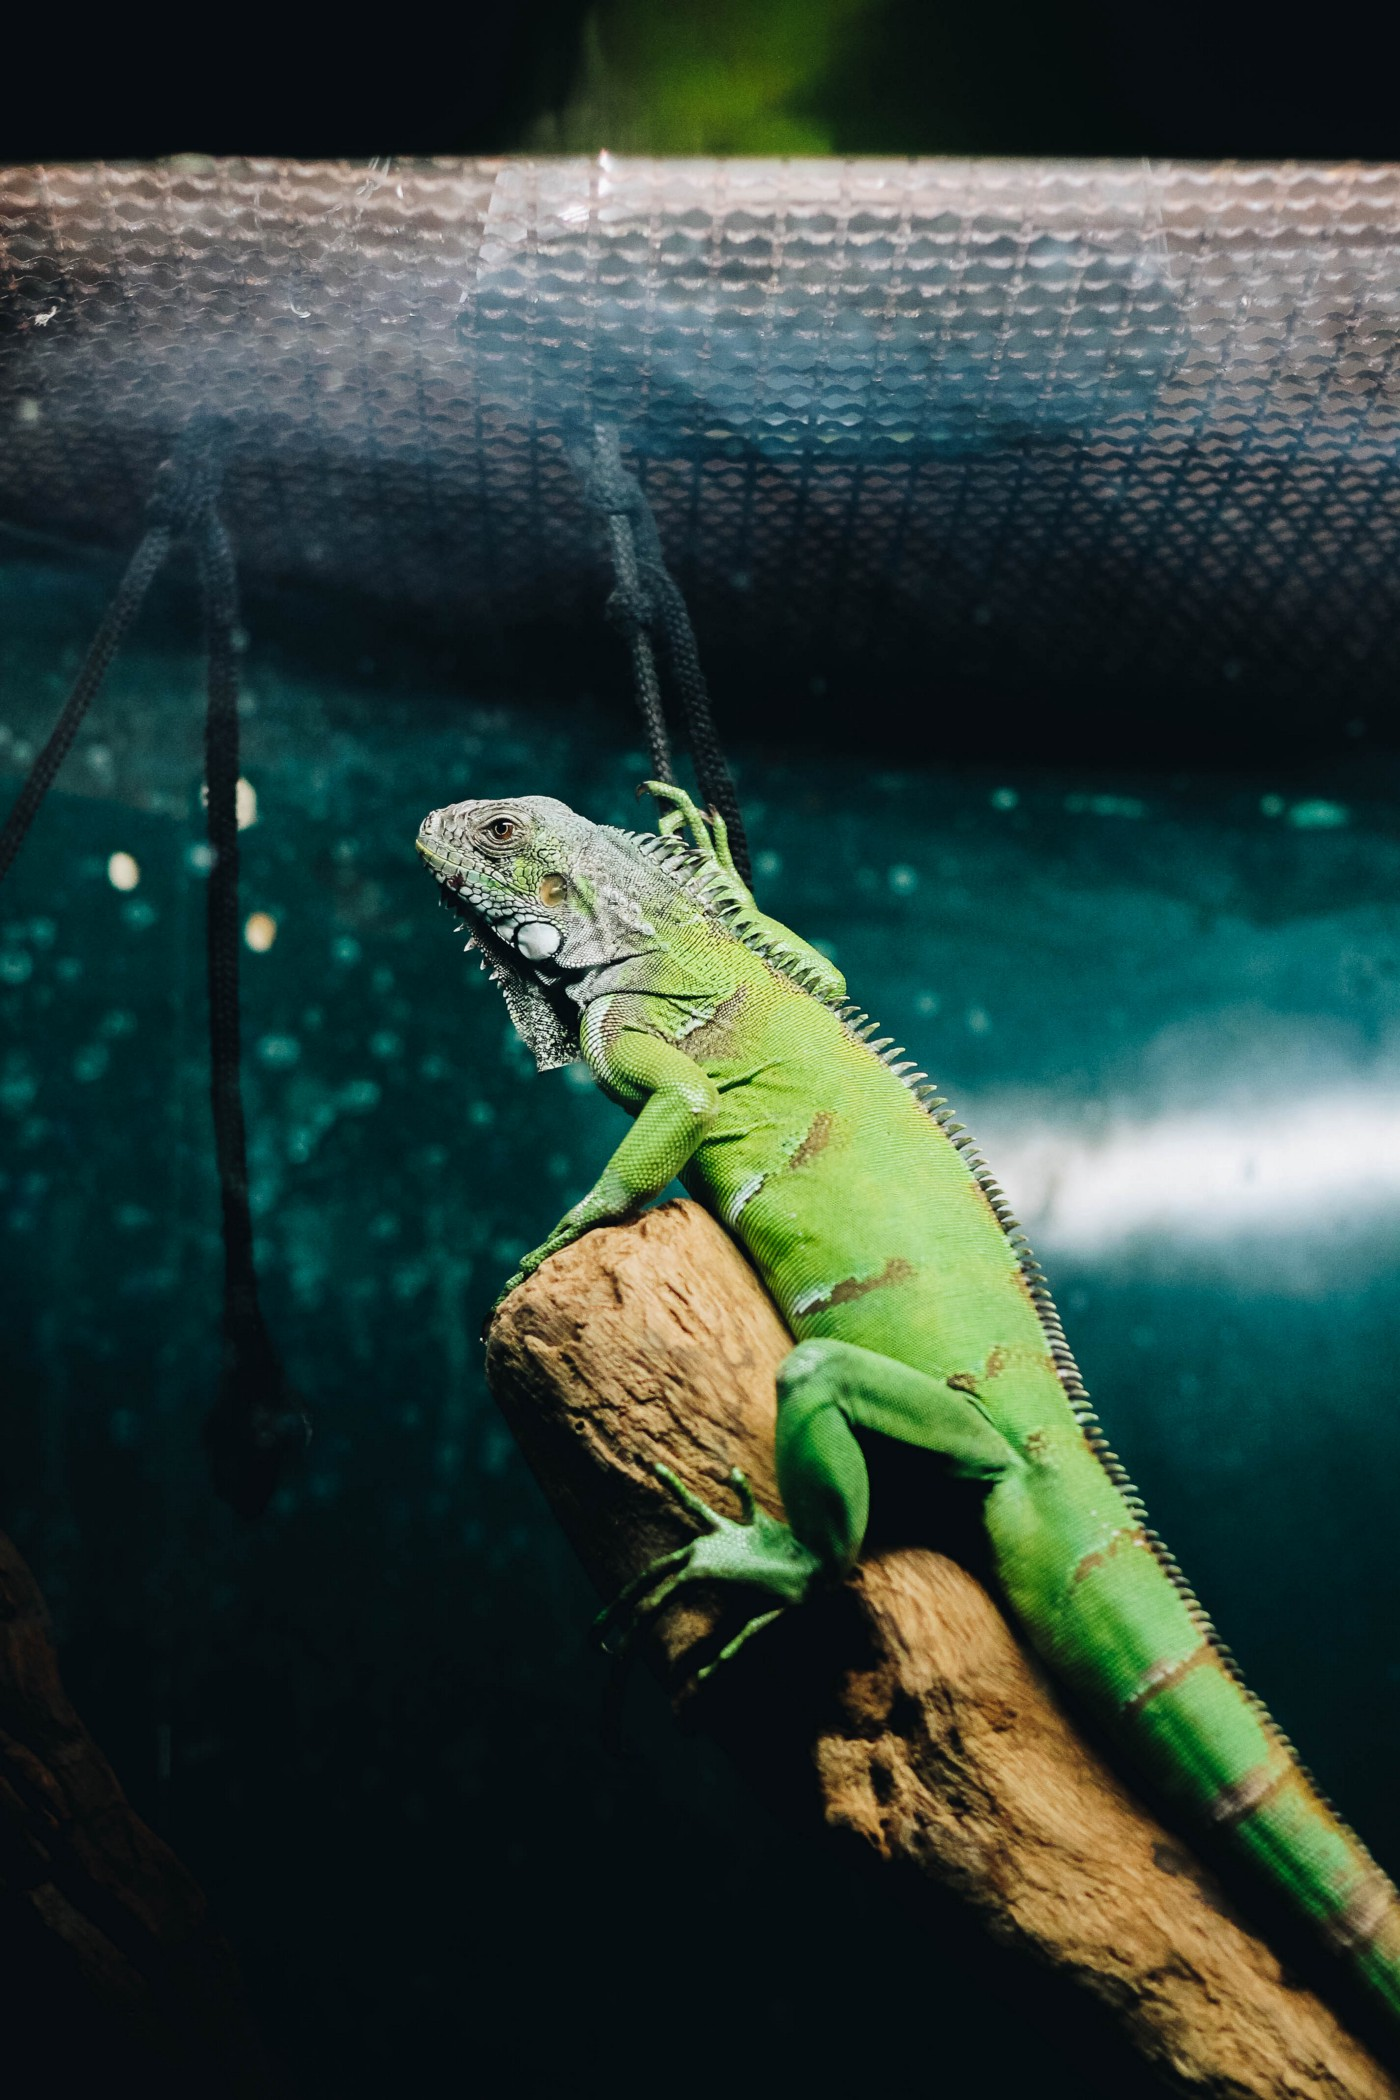 A picture of an Iguana with a dark background